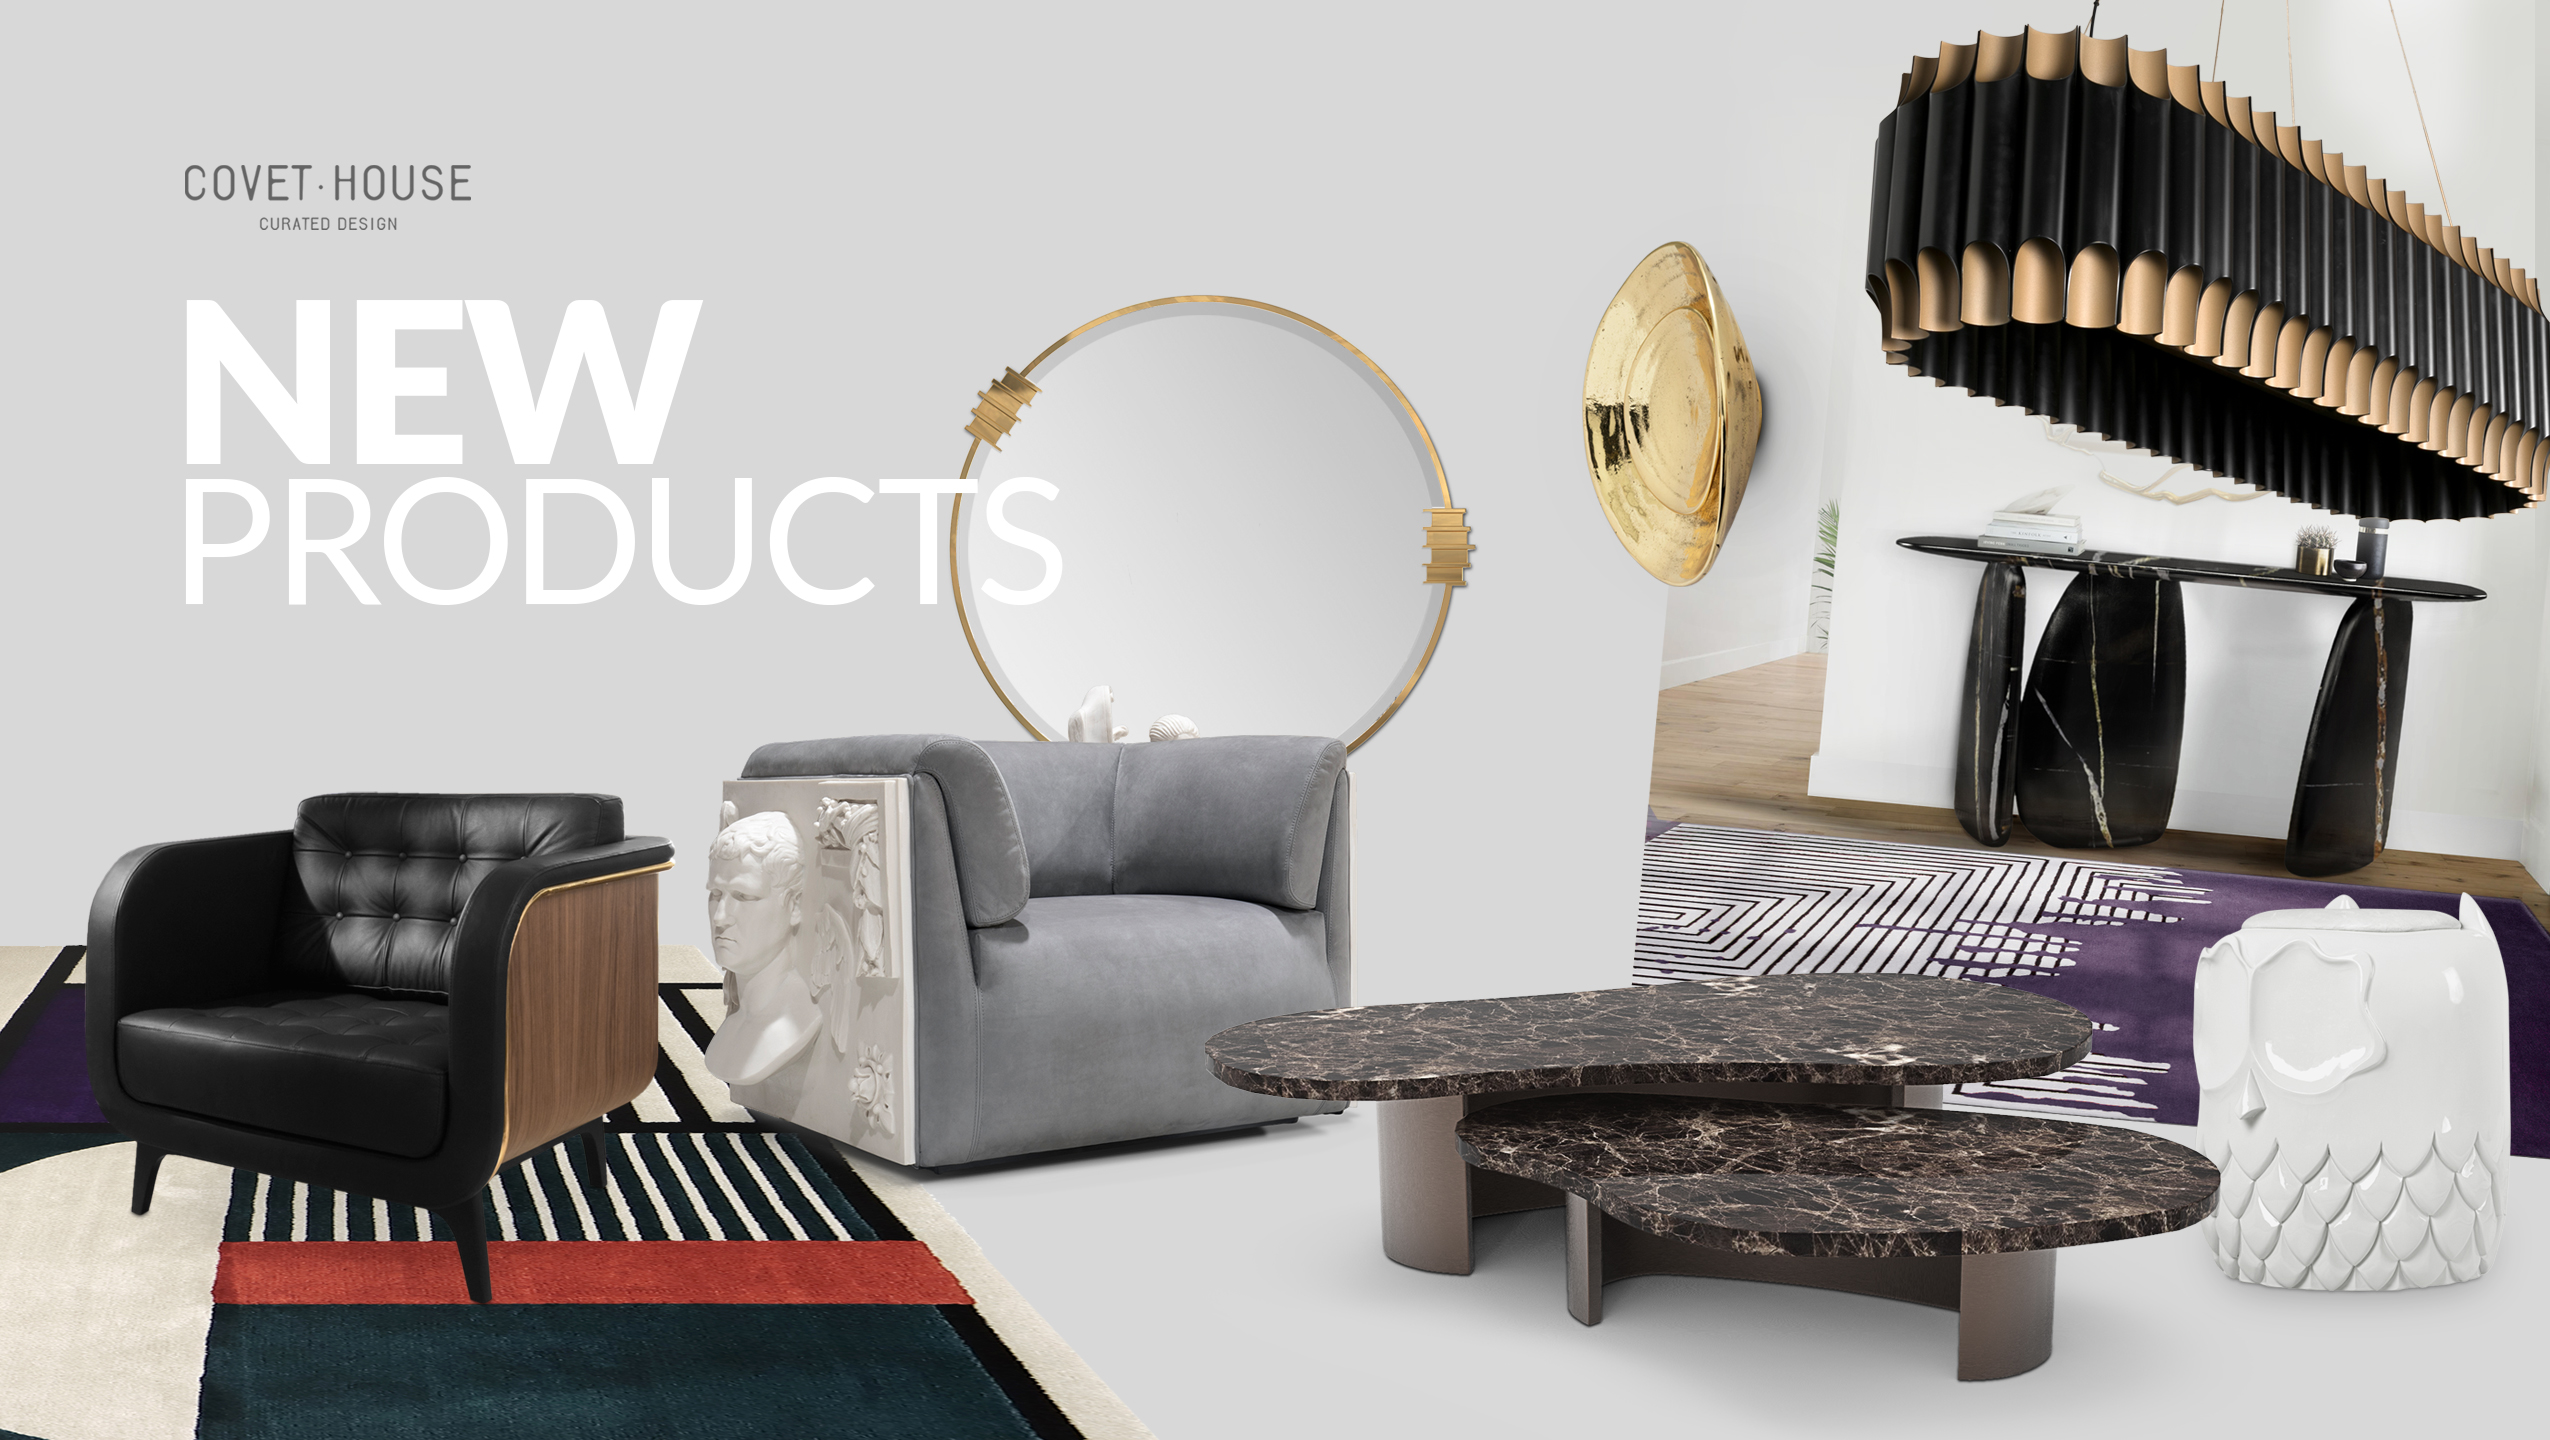 New Products 2020 japanese style bedroom design It's Time To Embrace The Japanese Style Bedroom Design newproducts